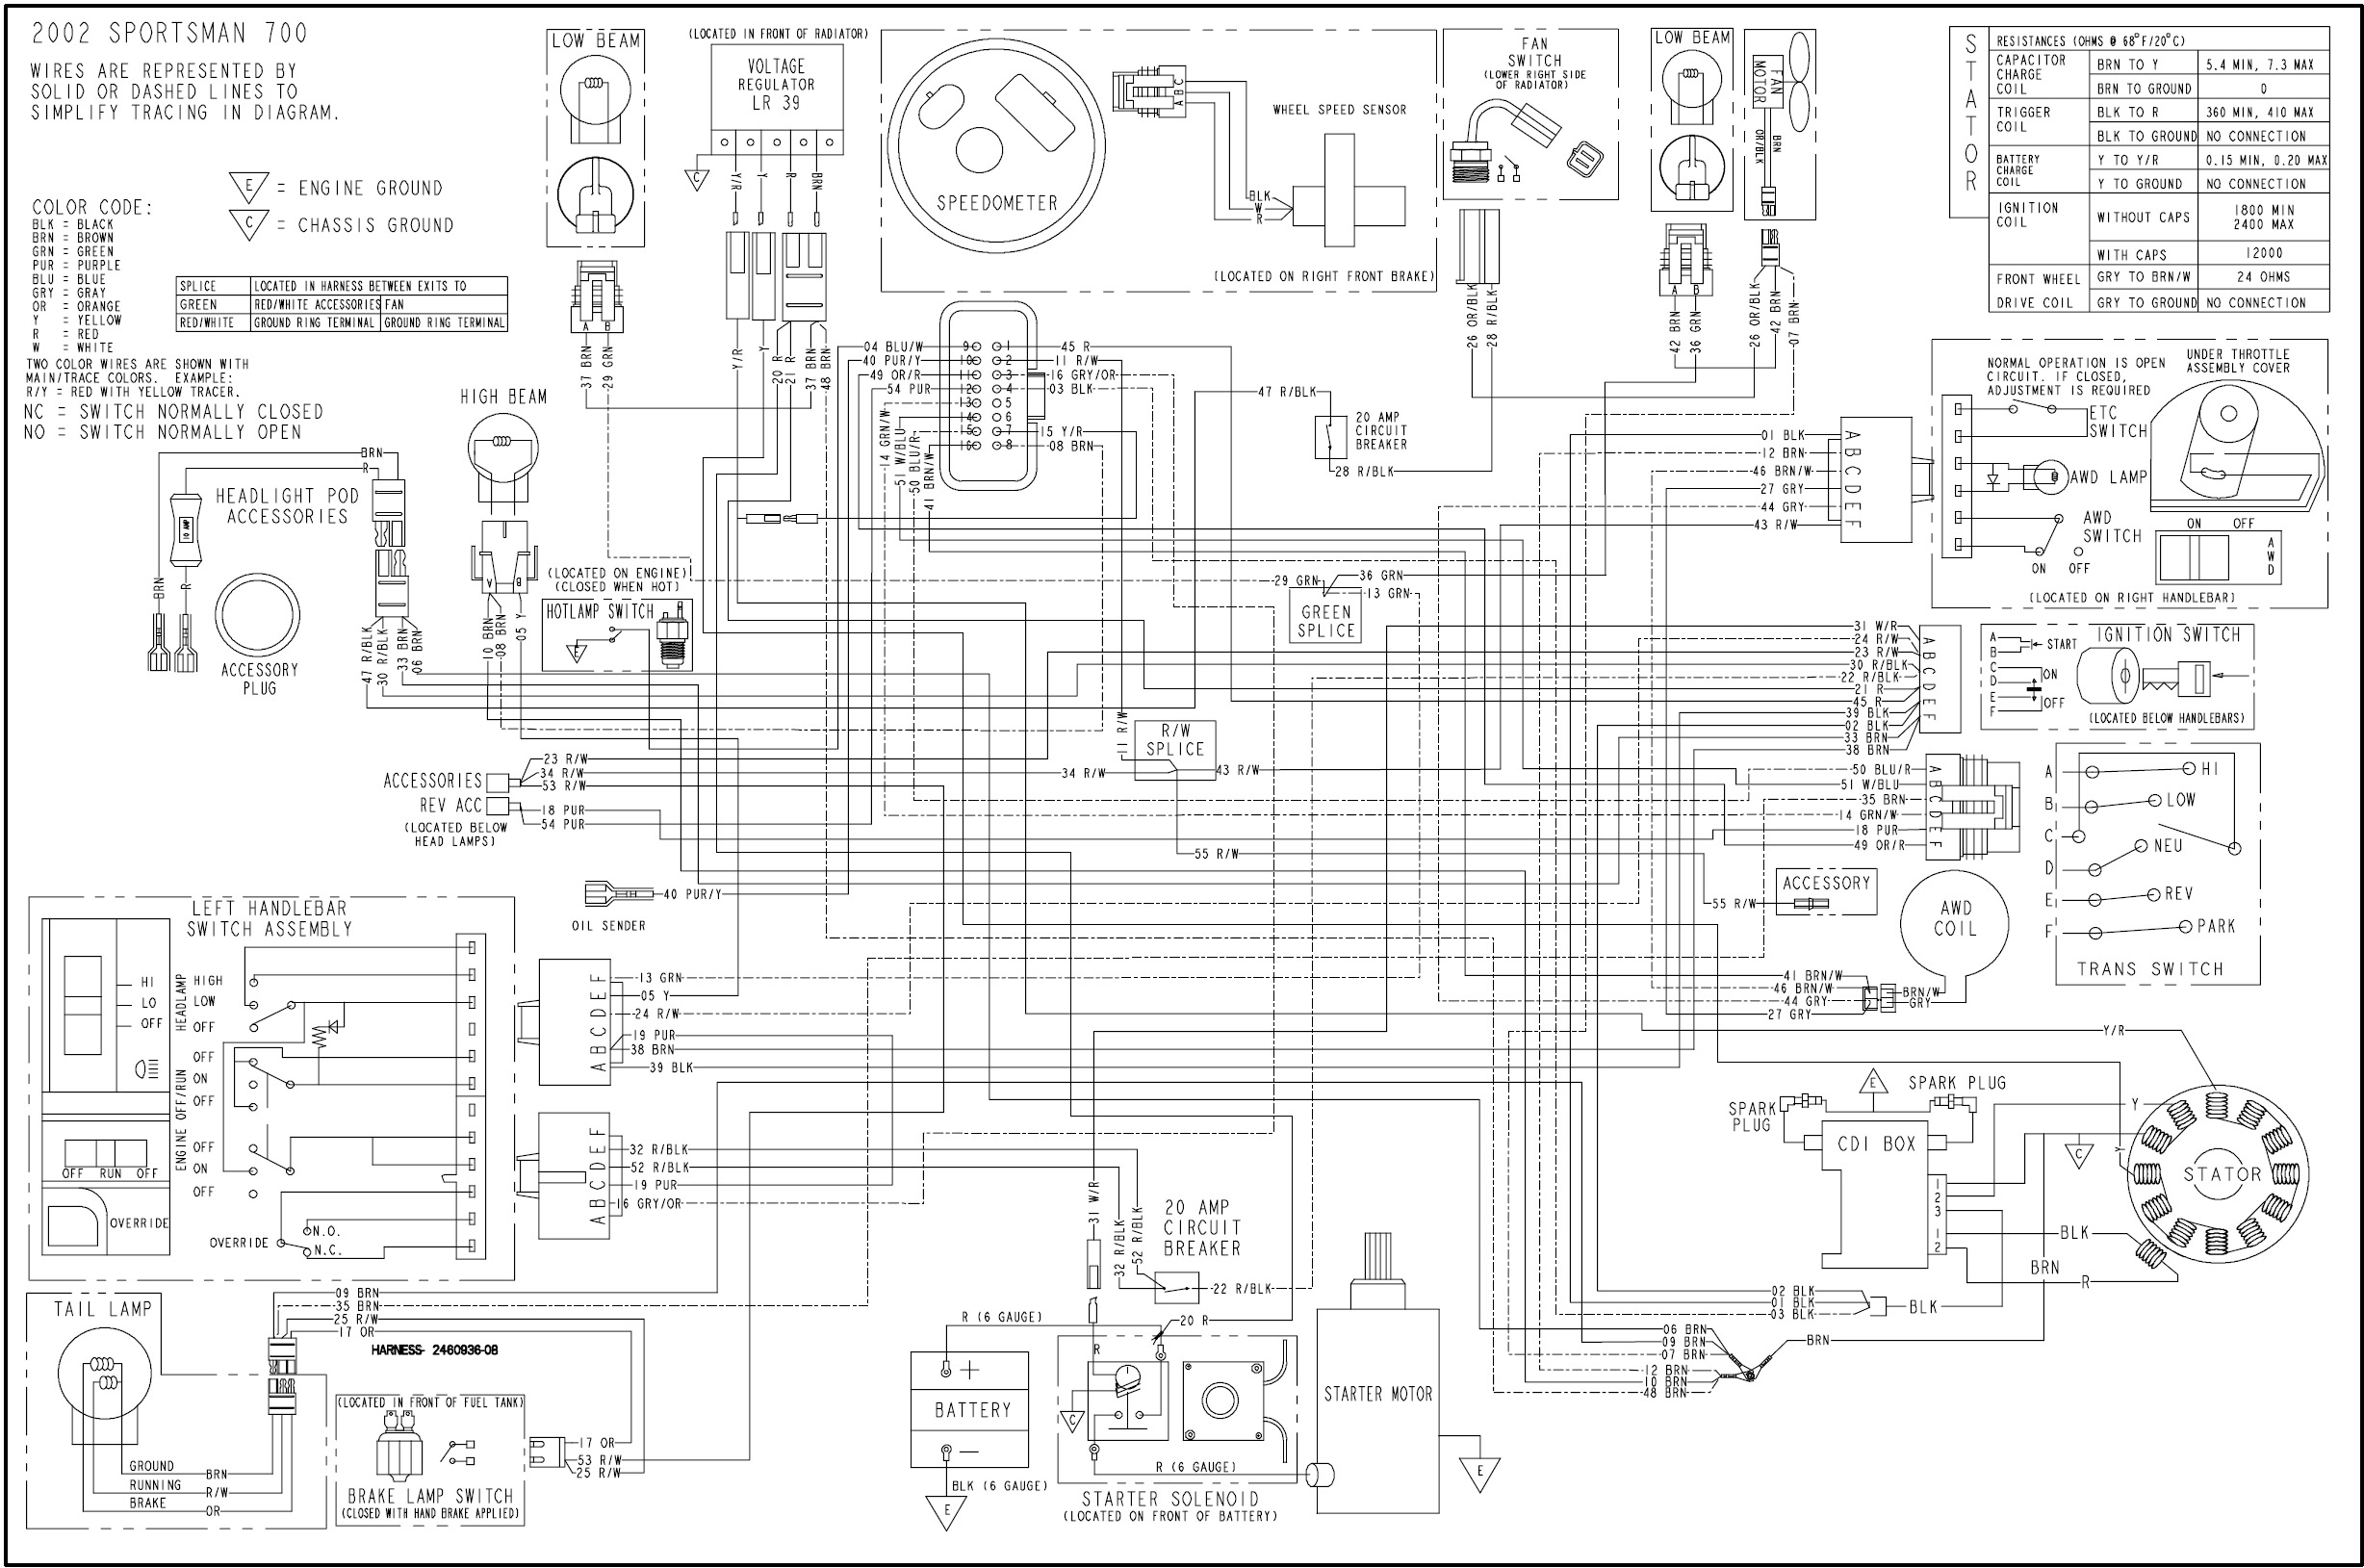 75754d1491234477 2001 sportsman 700 twin no start 2002_polaris_sportsman_700_wiring_diagram polaris wire harness drlete,wire \u2022 j squared co 2001 Polaris Sportsman 90 Wiring Diagram at gsmportal.co